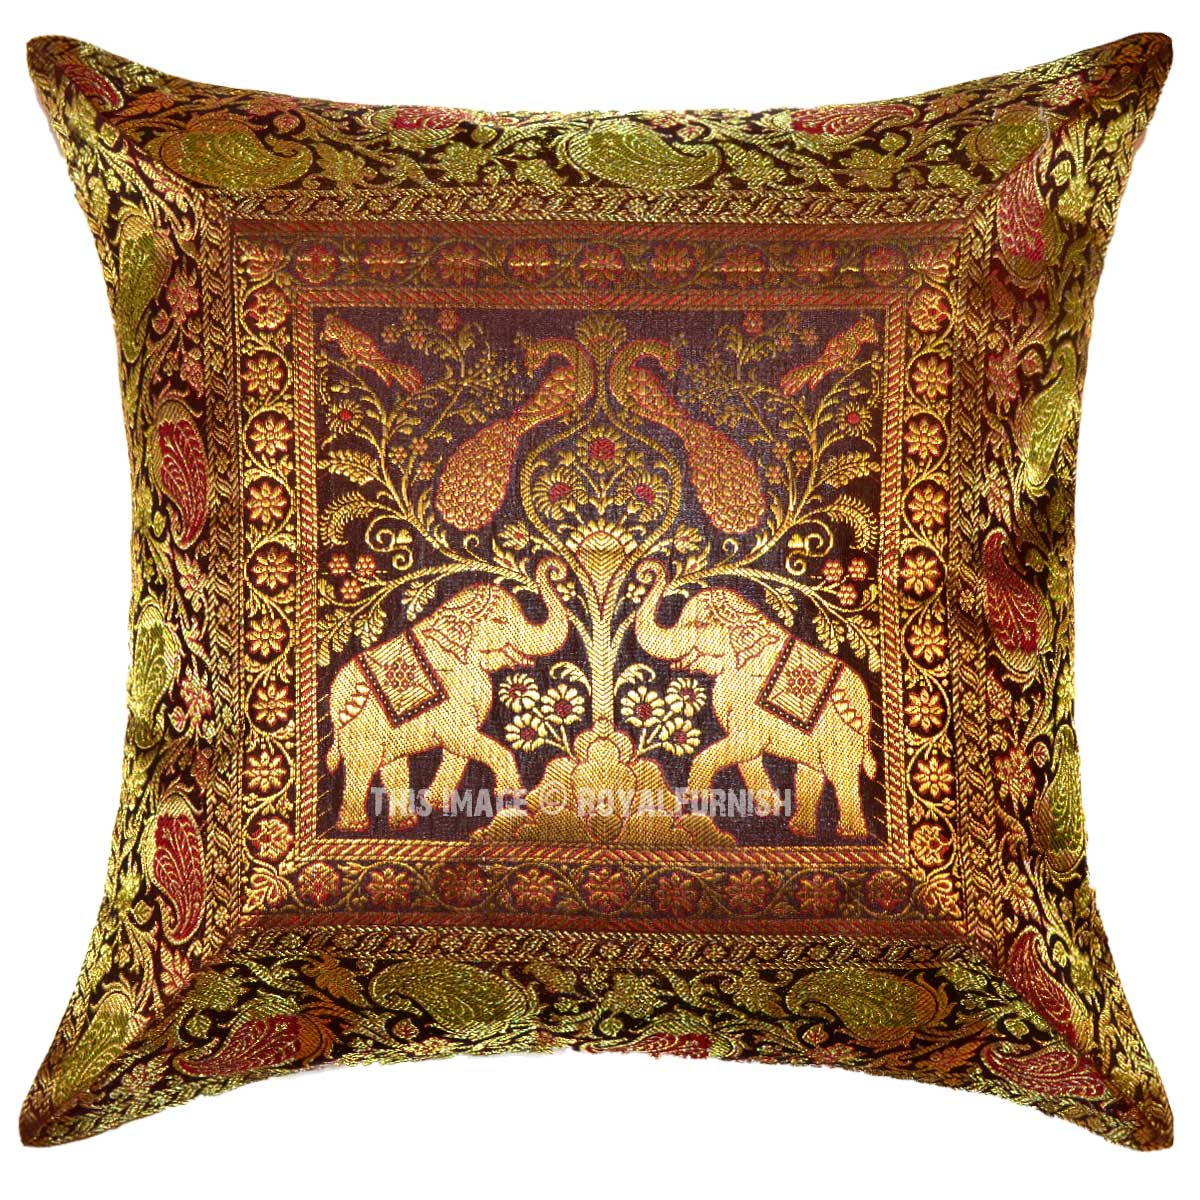 72 inch sofa bed sofas for dogs online brown two elephants and peacocks featuring boho accent ...